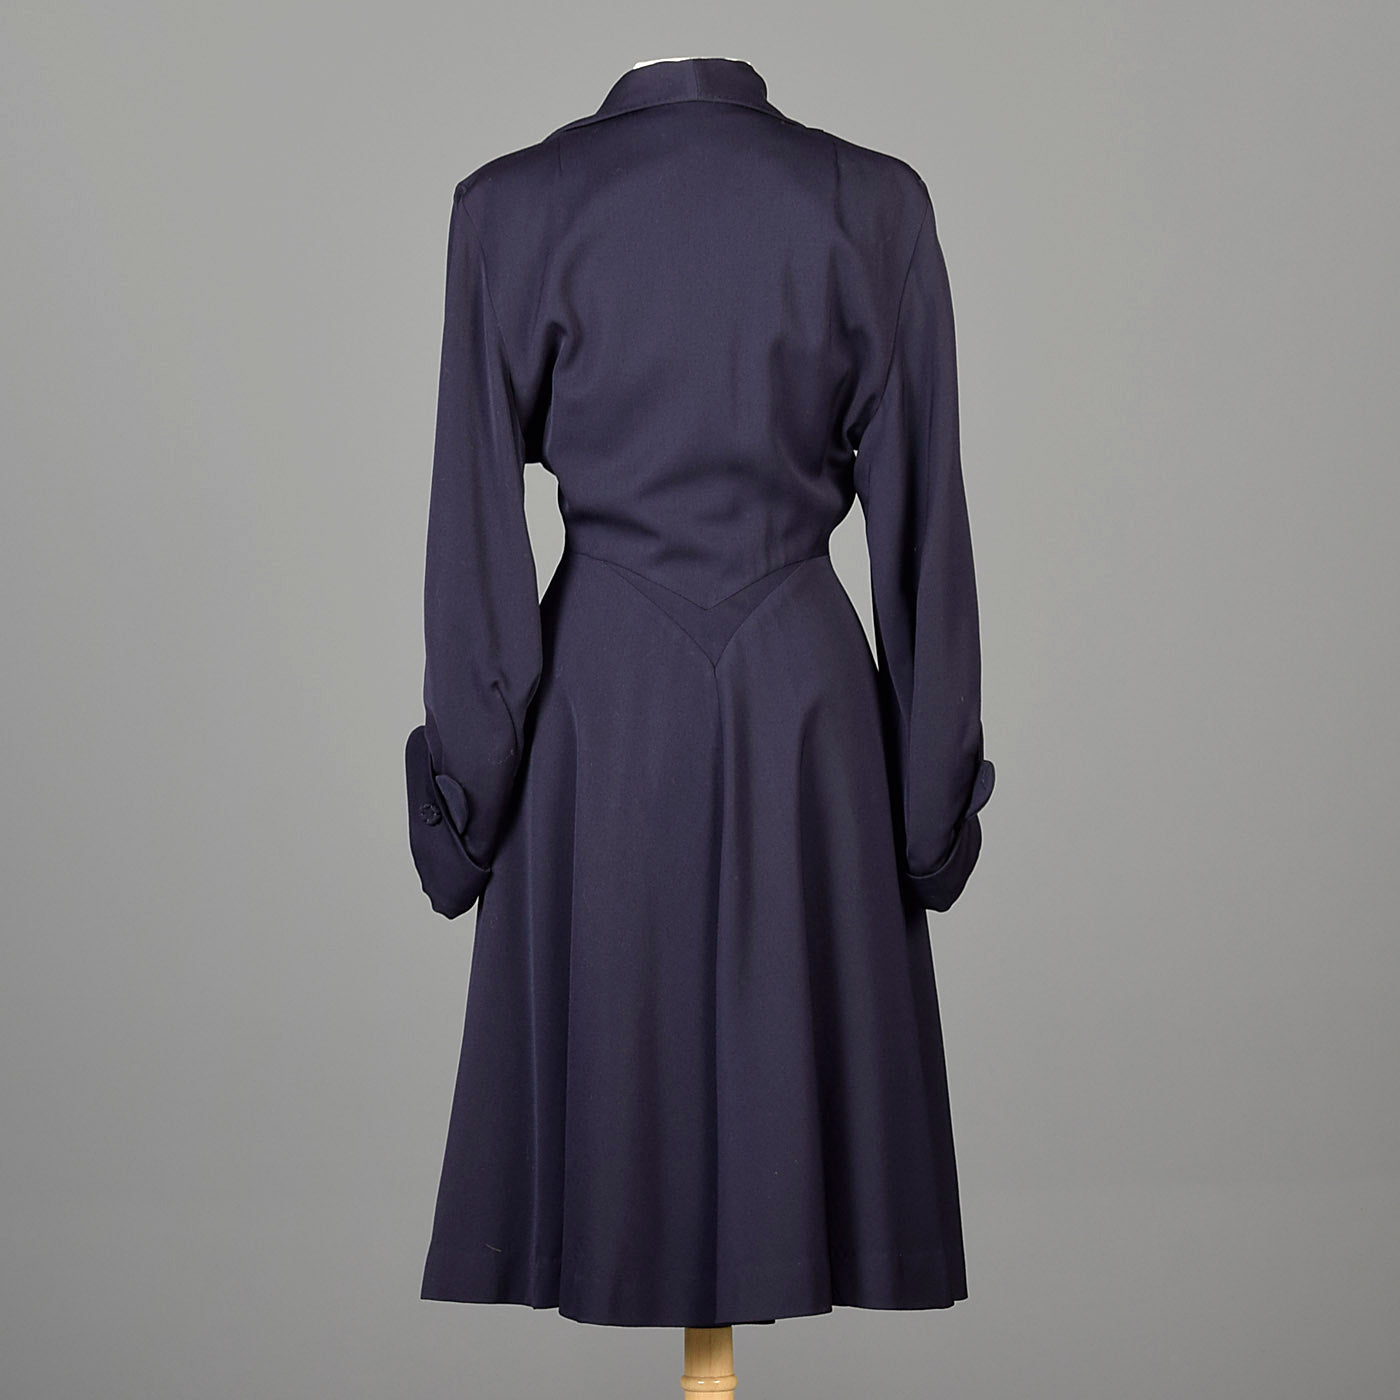 1950s Blue Gabardine Hourglass Princess Coat with Full Sleeves